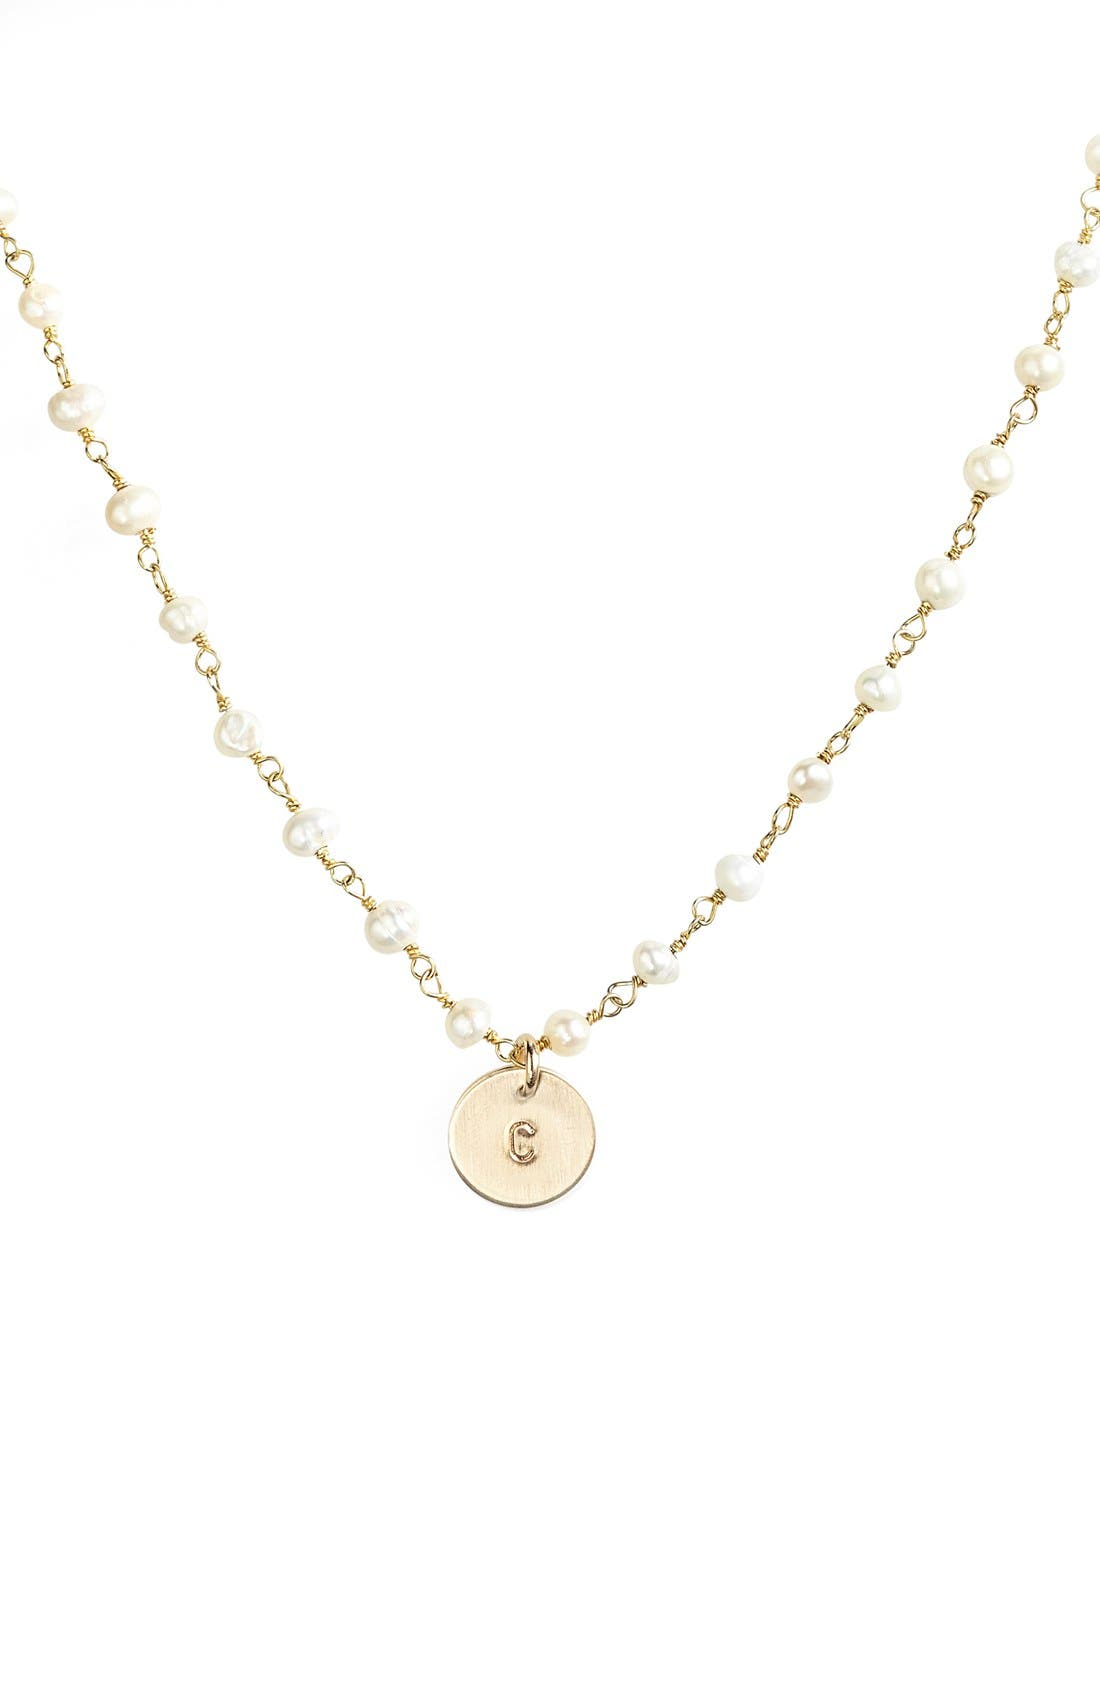 Main Image - Nashelle 14k-Gold Fill Mini Initial Disc Pearl Necklace